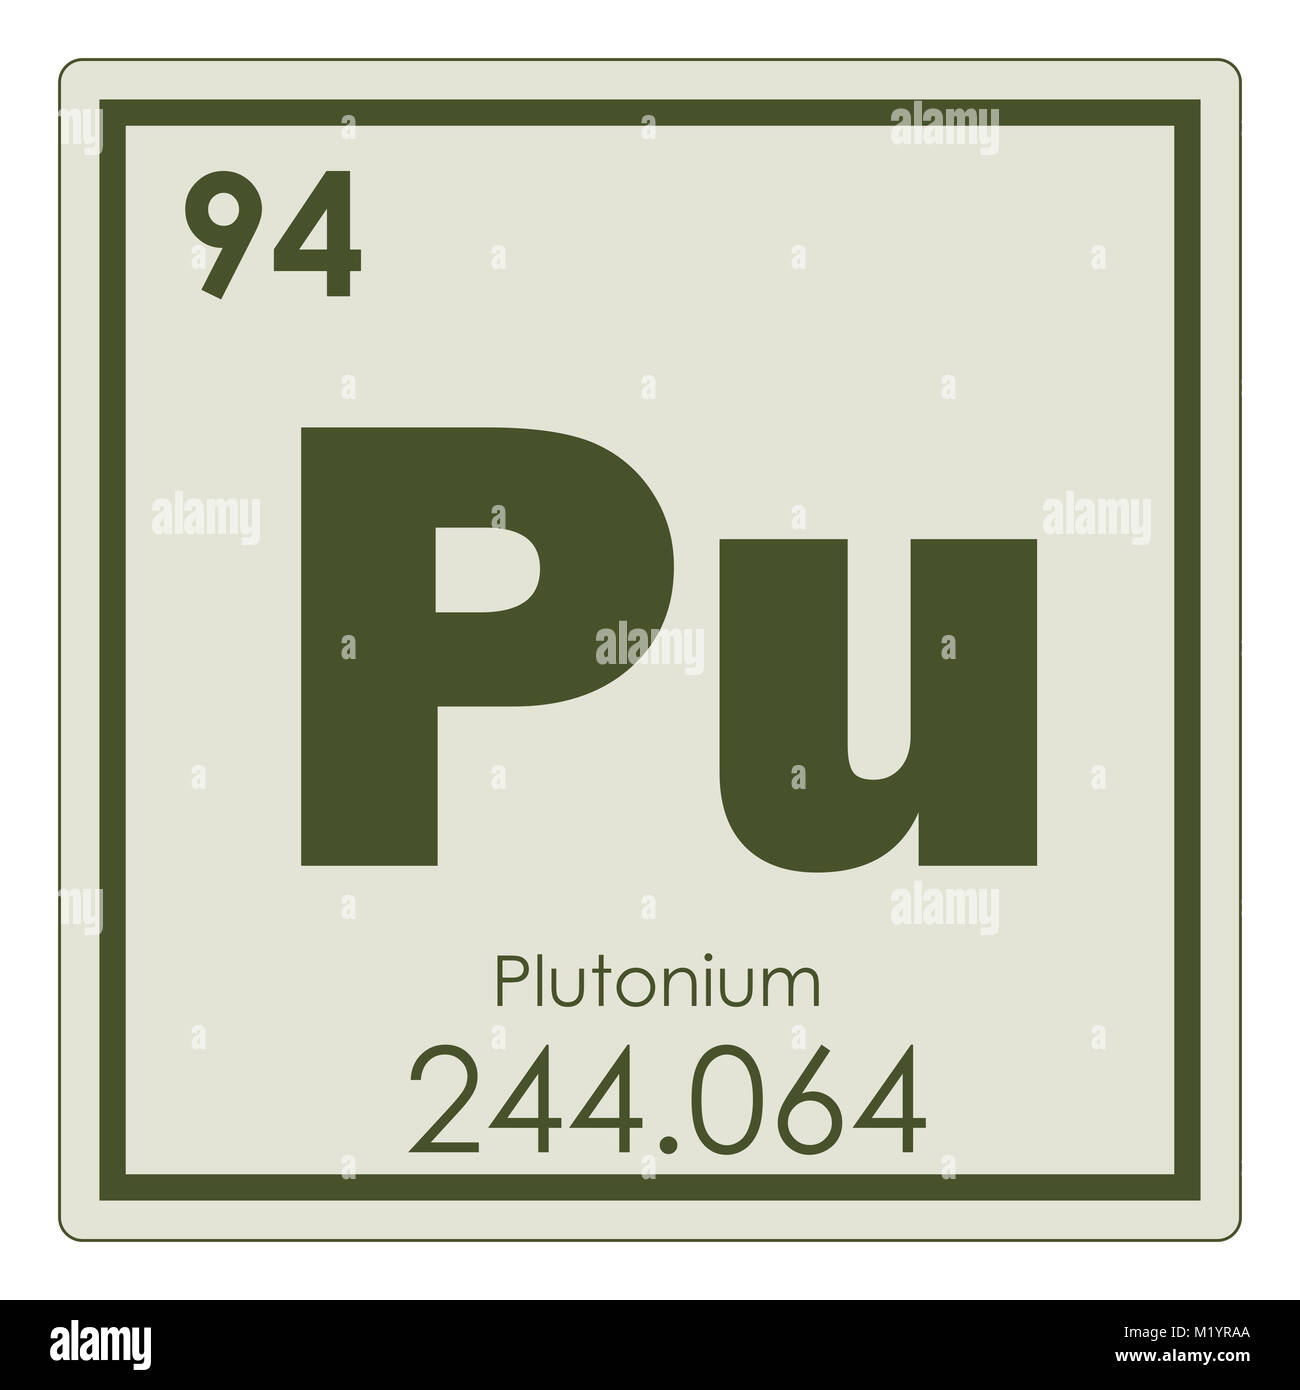 Plutonium chemical element periodic table science symbol stock photo plutonium chemical element periodic table science symbol biocorpaavc Image collections